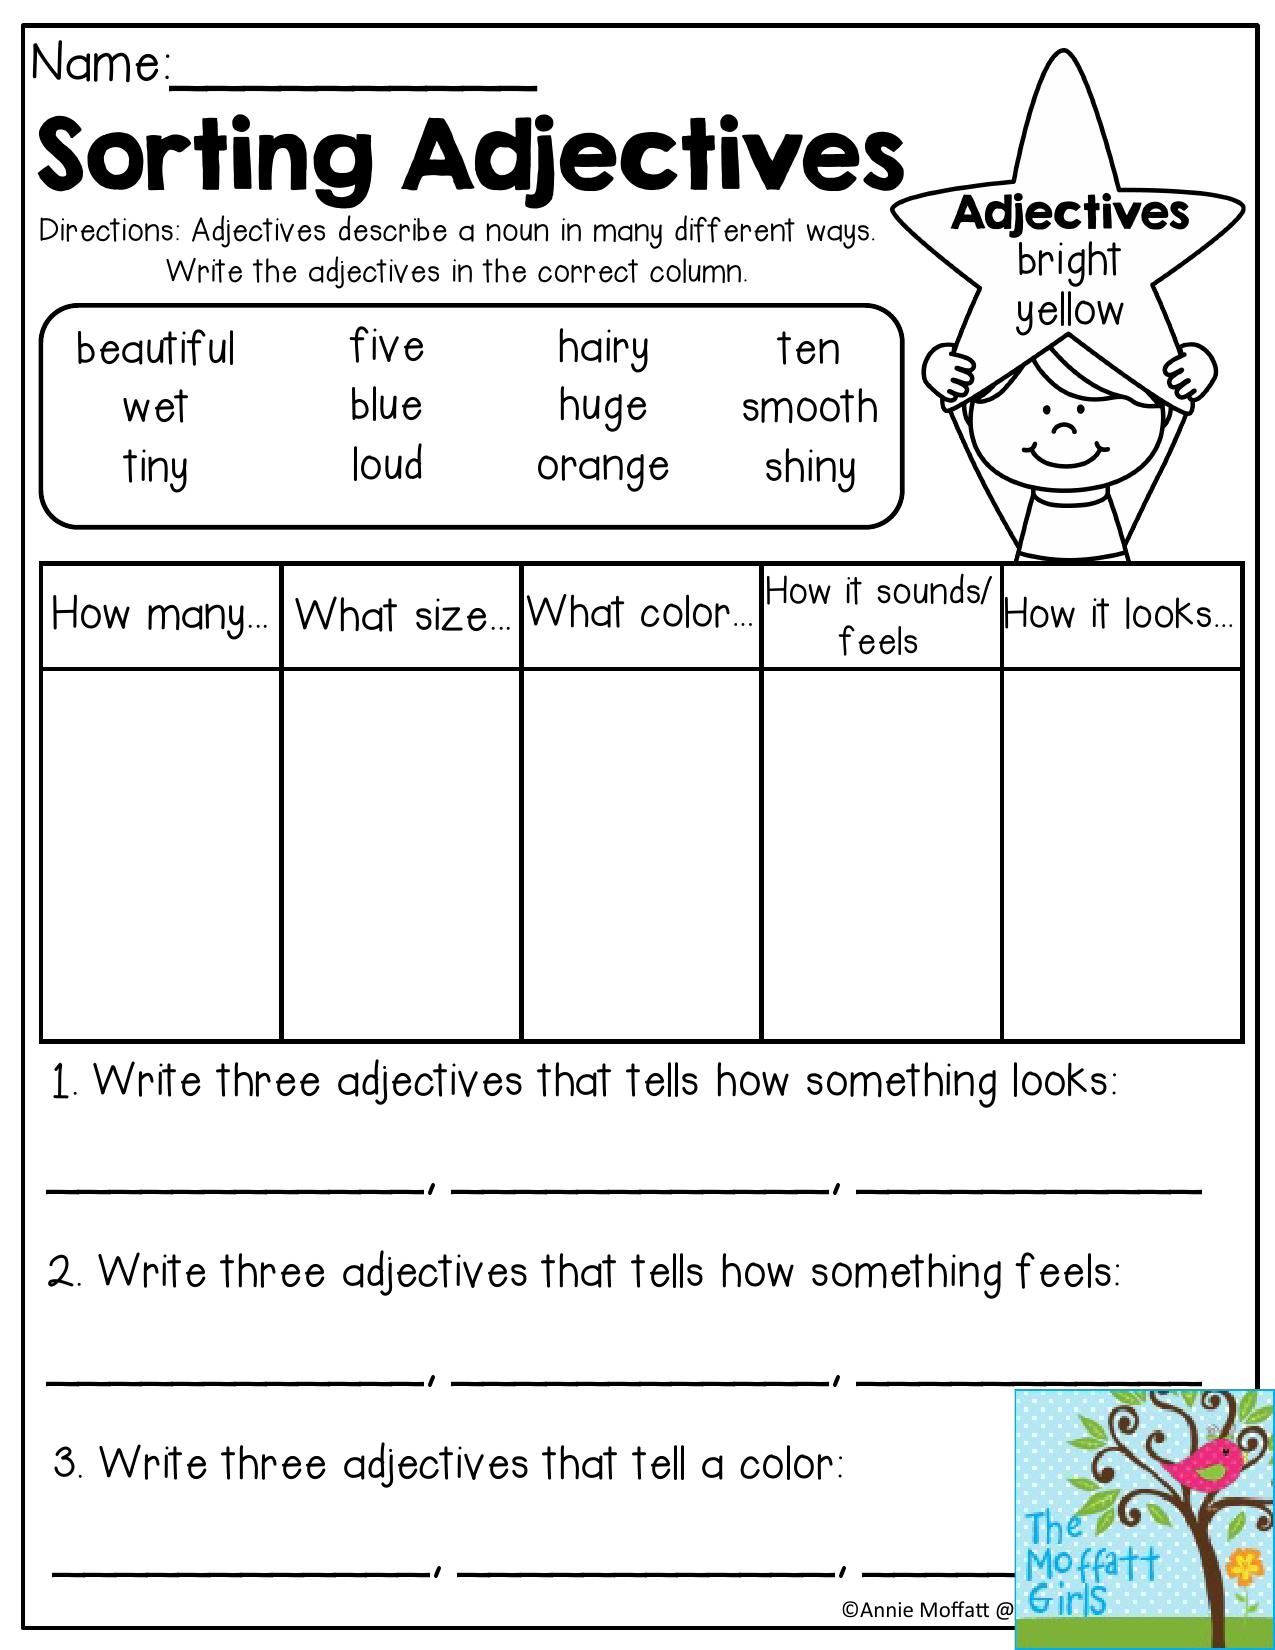 Worksheets Second Grade Grammar Worksheets sorting adjectives describe a noun in many different ways write the grammar activitiesgrammar w